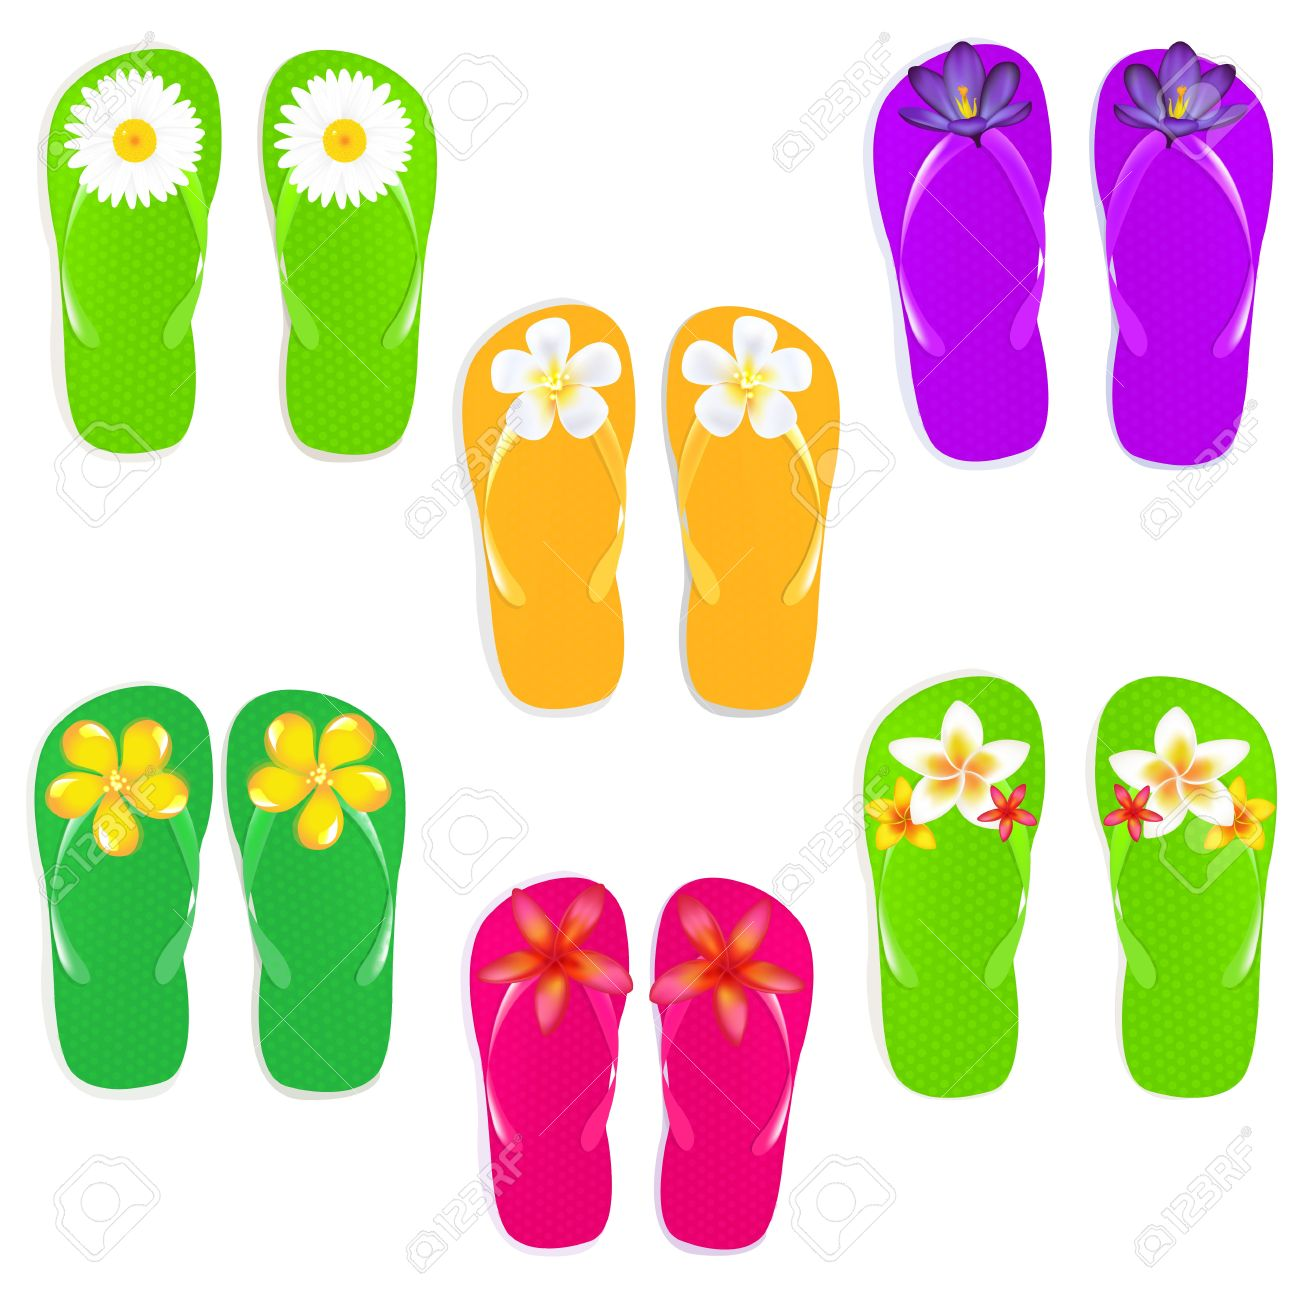 6 Flip Flops With Flowers Isolated On White Background Royalty Free